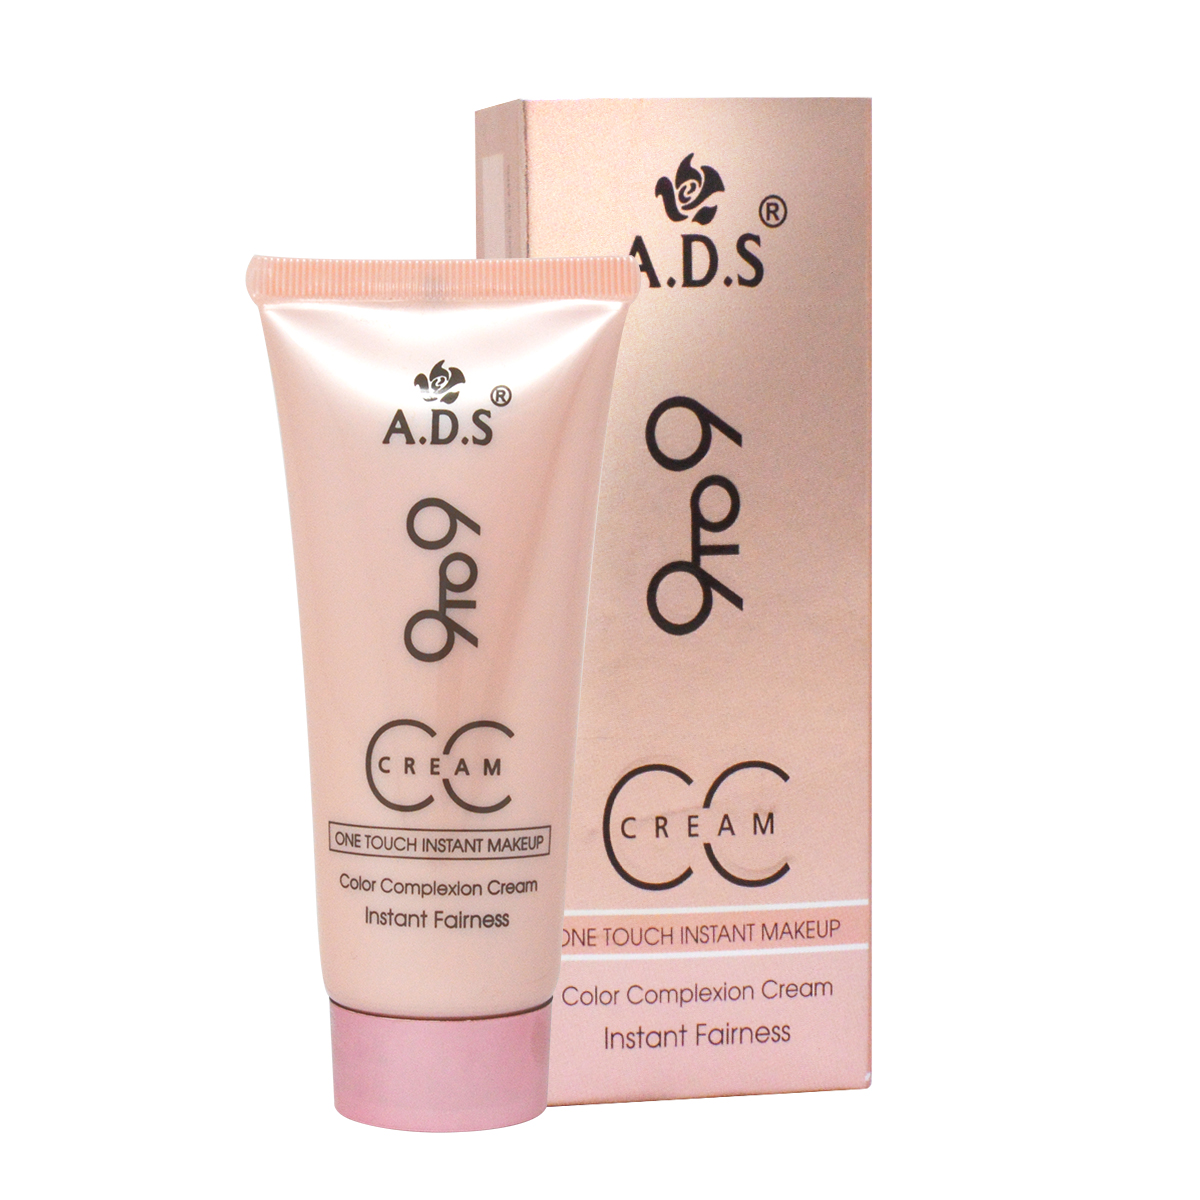 ADS Good Choice India 9 to 9 CC Cream 60g and 9 to 6 Scatch Eyeliner 1.2g With Red Lipstick 4.5g-GC1033